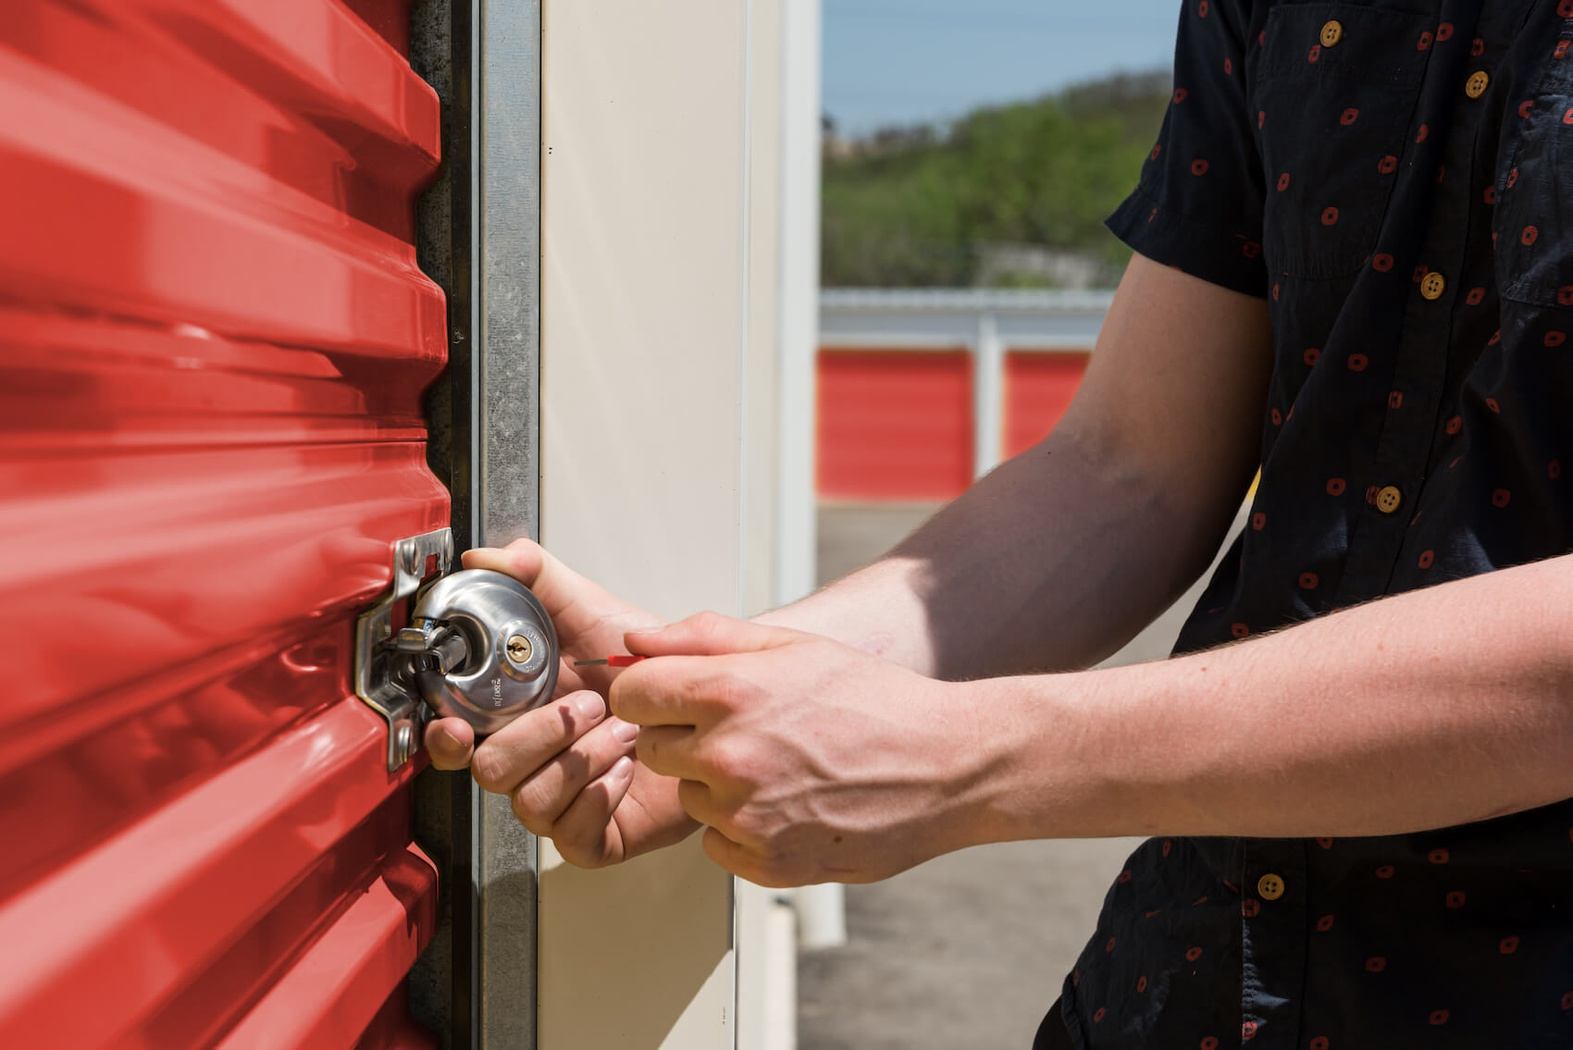 Rent Vaudreuil-Dorion storage units at 2871 Rue du Meunier. We offer a wide-range of affordable self storage units and your first 4 weeks are free!